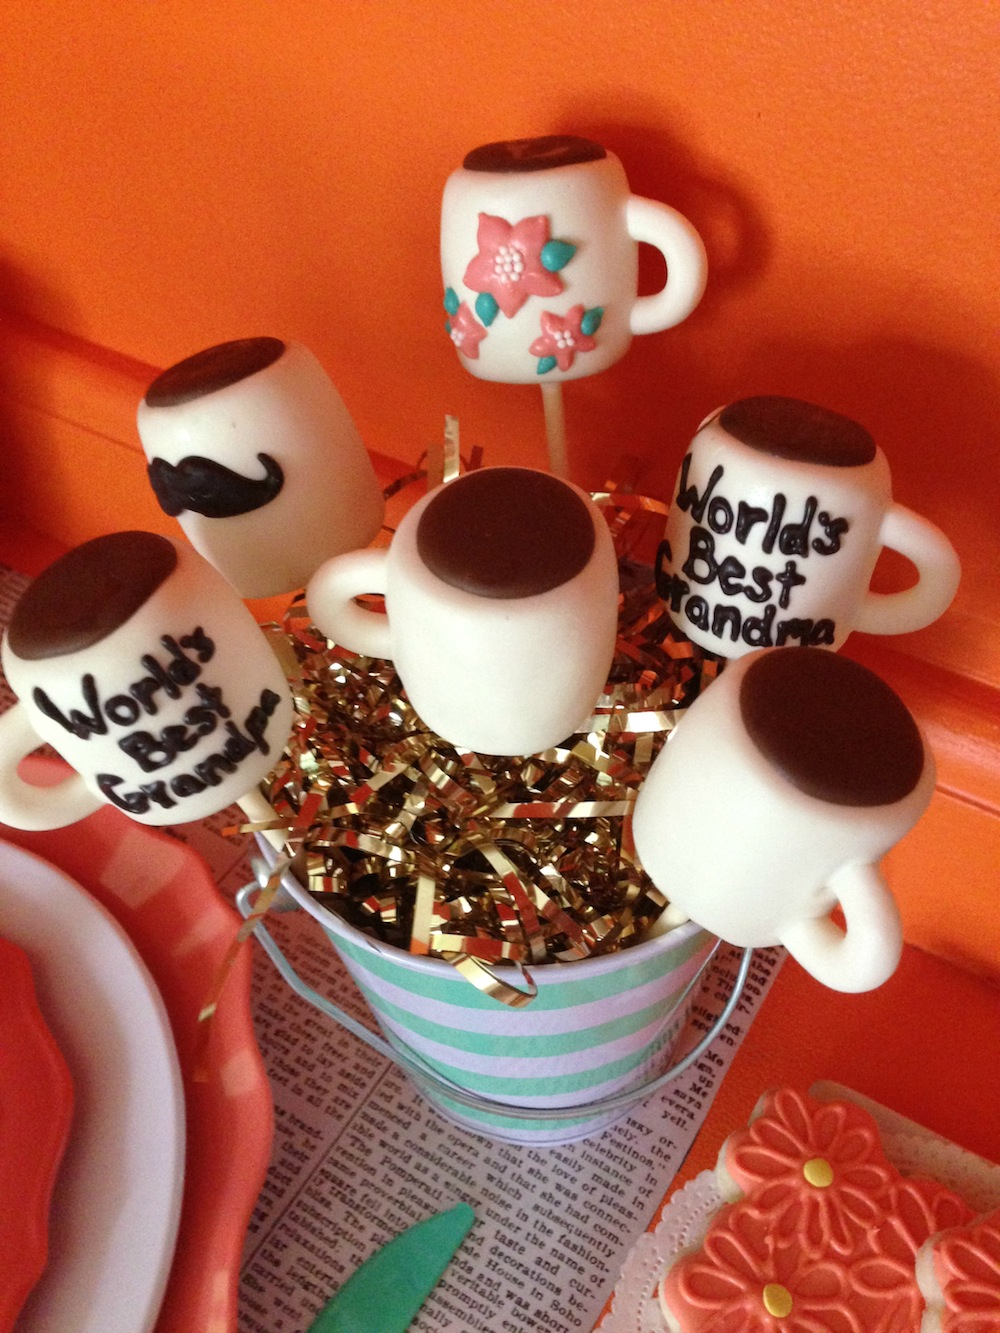 grandparents-day-styled-photo-shoot-coffee-cake-pops.jpg